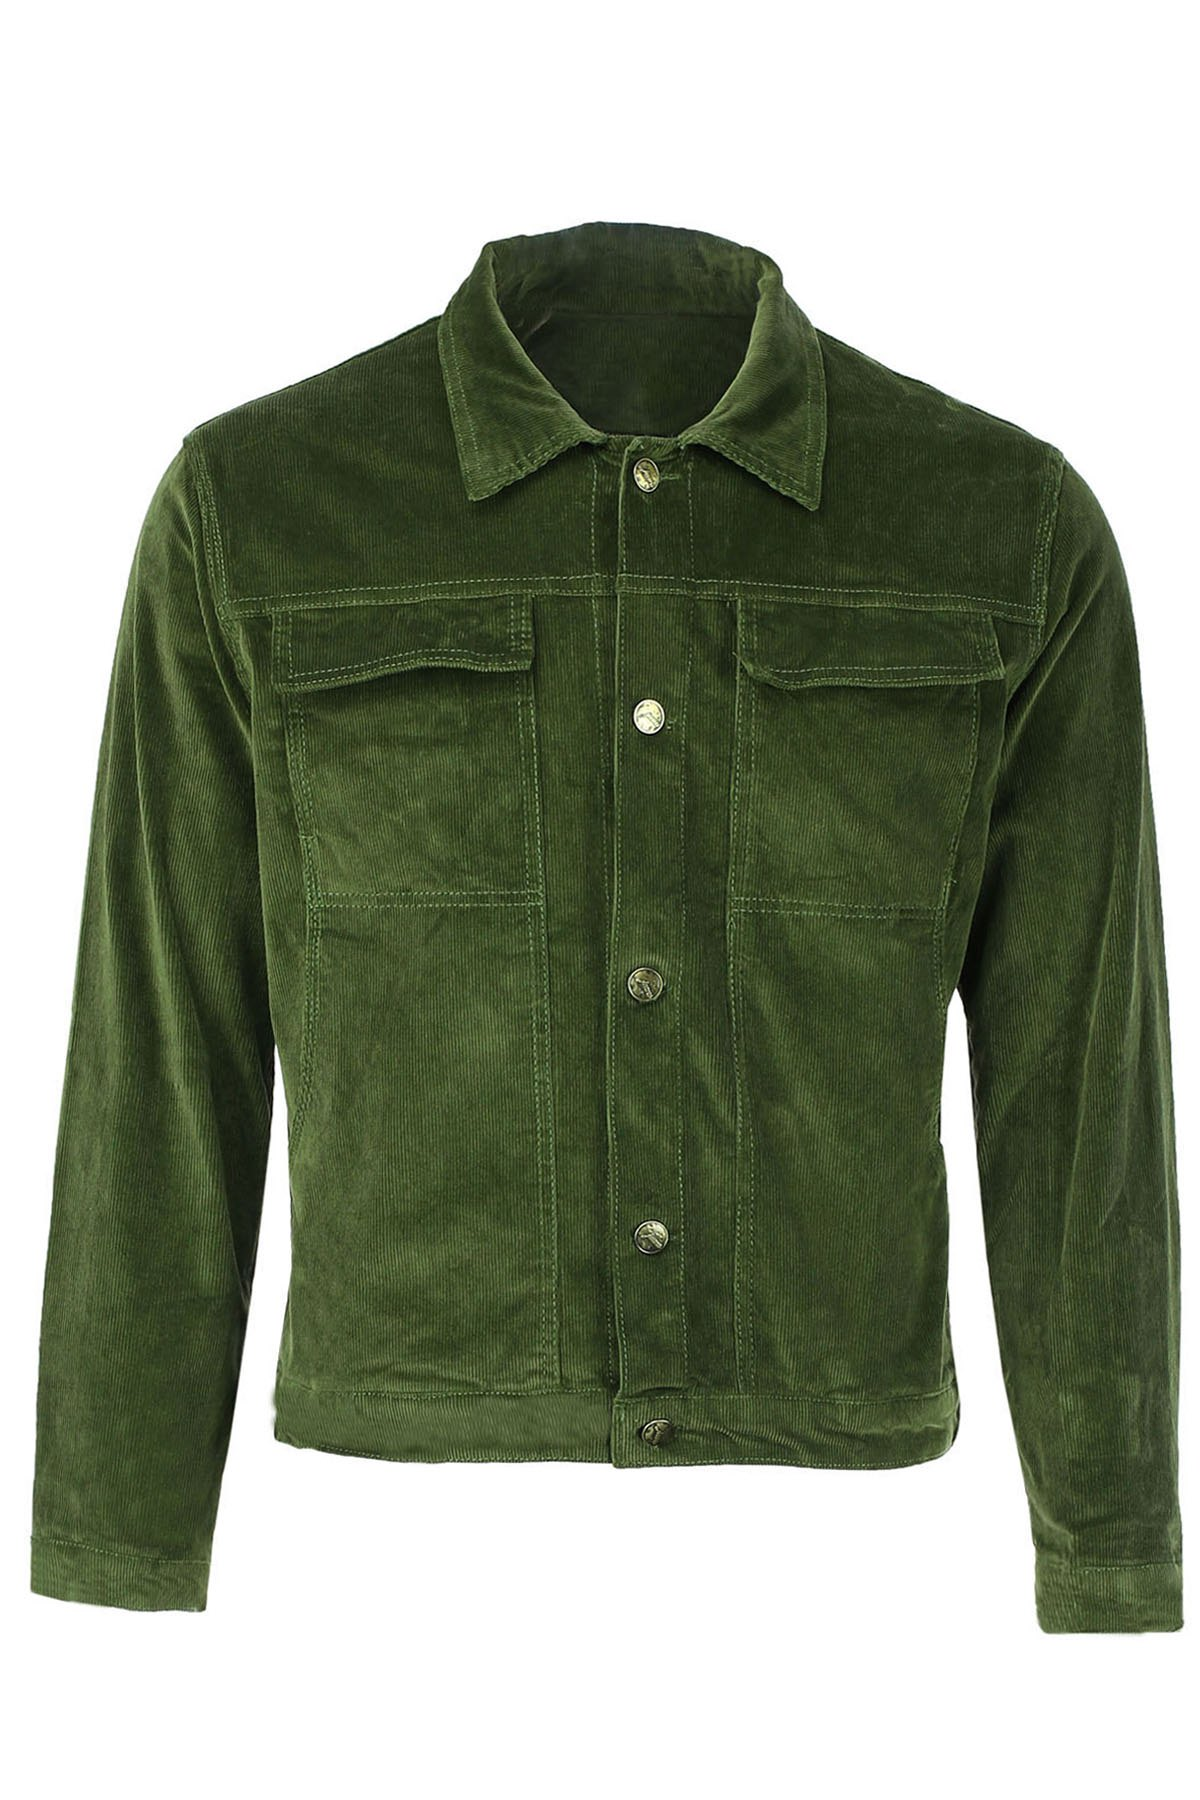 Turn-Down Collar Corduroy Double Jackets Long Sleeve Men's Jacket - GREEN L